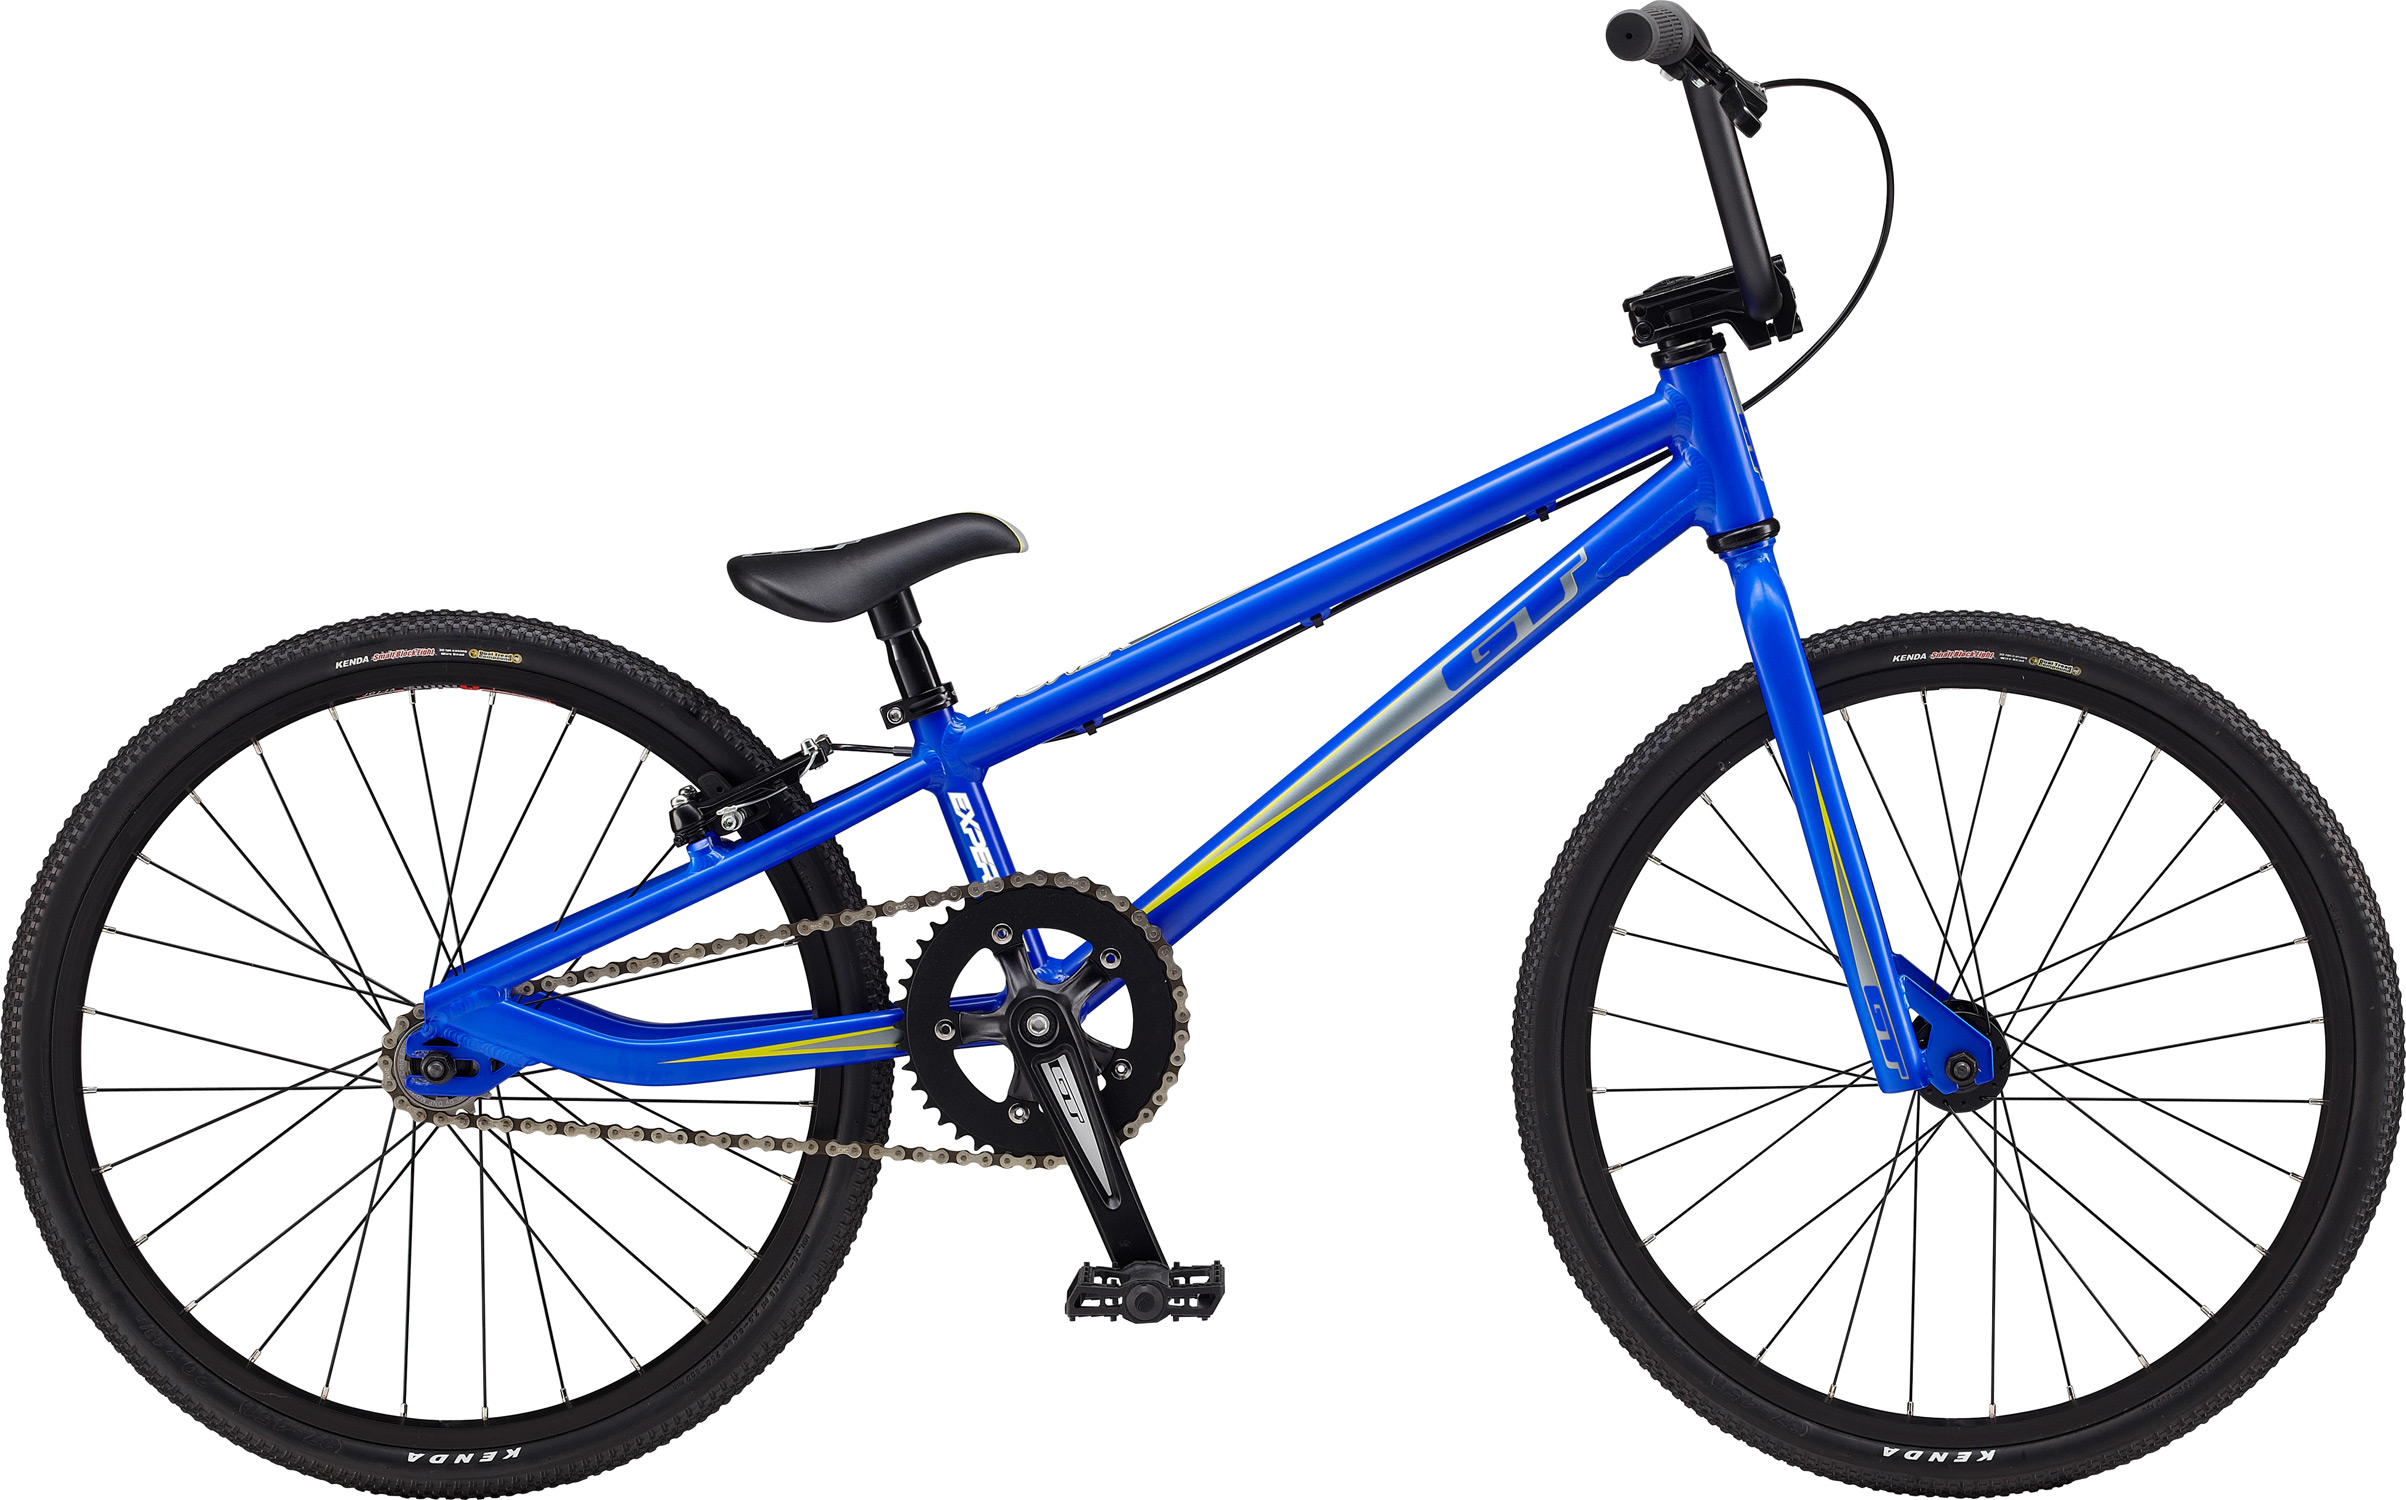 "BMX Key Features of the GT Power Series Expert BMX Bike 20"": Frame: NEW Straight Gauge, 6061 Aluminum Fork: GT, 100% Cro-Mo, 28.6 X 22.2 Oval, 3/8, 1"" Steerer Crankset: GT Al, 175mm AL 16T Wheels/Hubs: GT Mohawk 28H Hole Brakes: Tektro BX1V - $339.95"